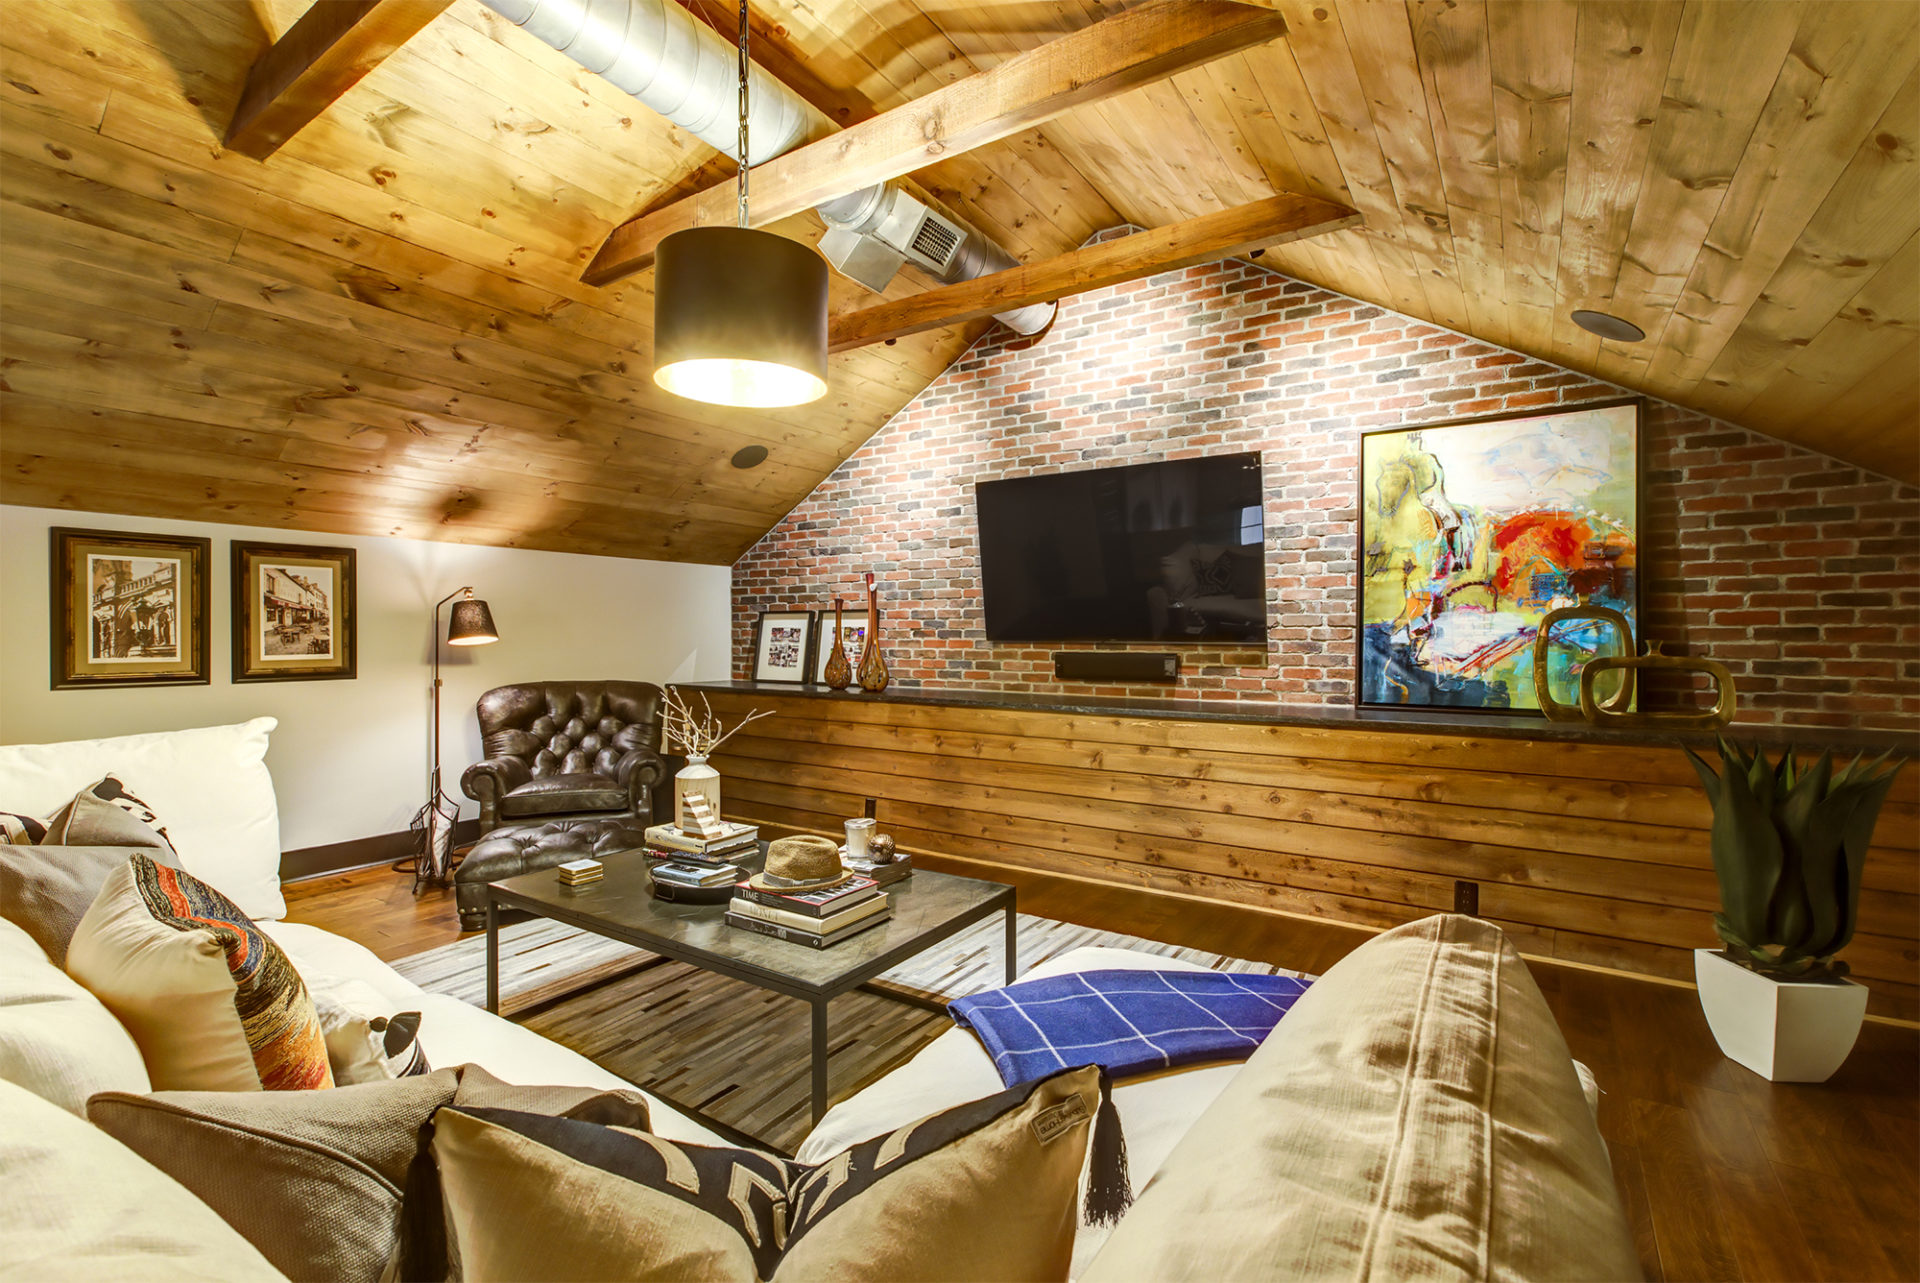 Contact Distinctive Remodeling